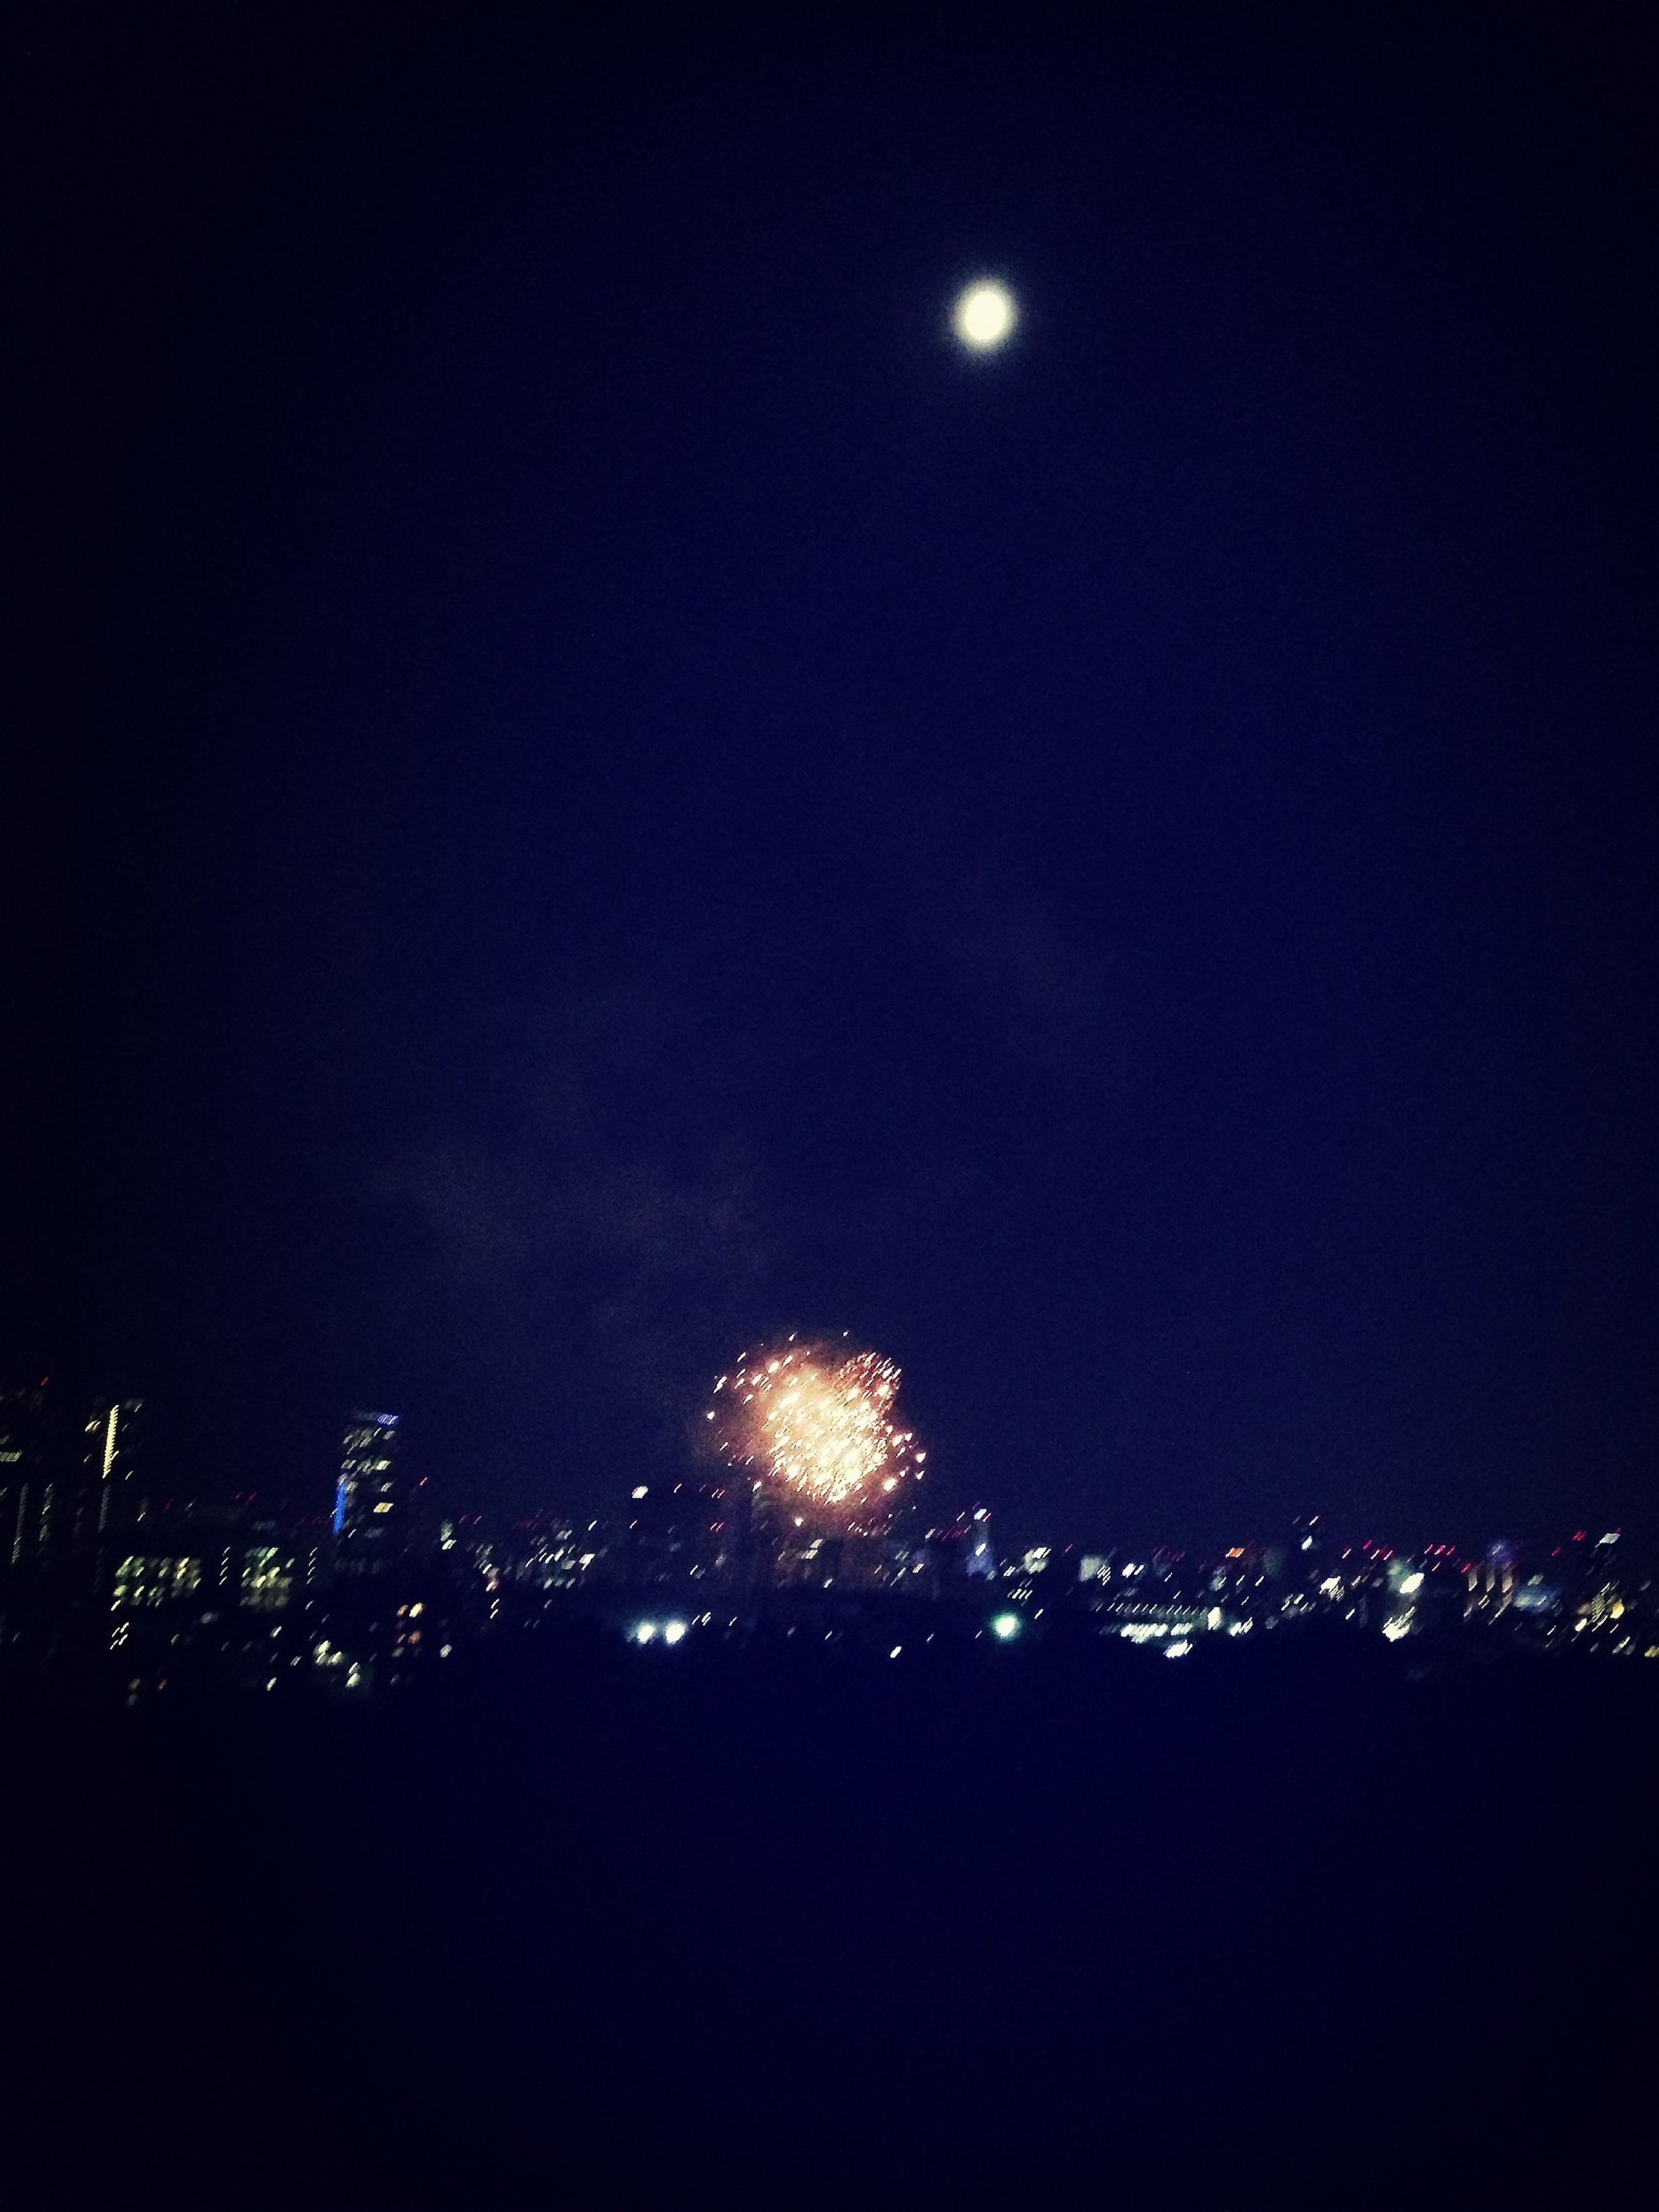 night, illuminated, city, cityscape, building exterior, moon, built structure, architecture, sky, dark, glowing, copy space, light, full moon, light - natural phenomenon, clear sky, lighting equipment, outdoors, no people, firework display